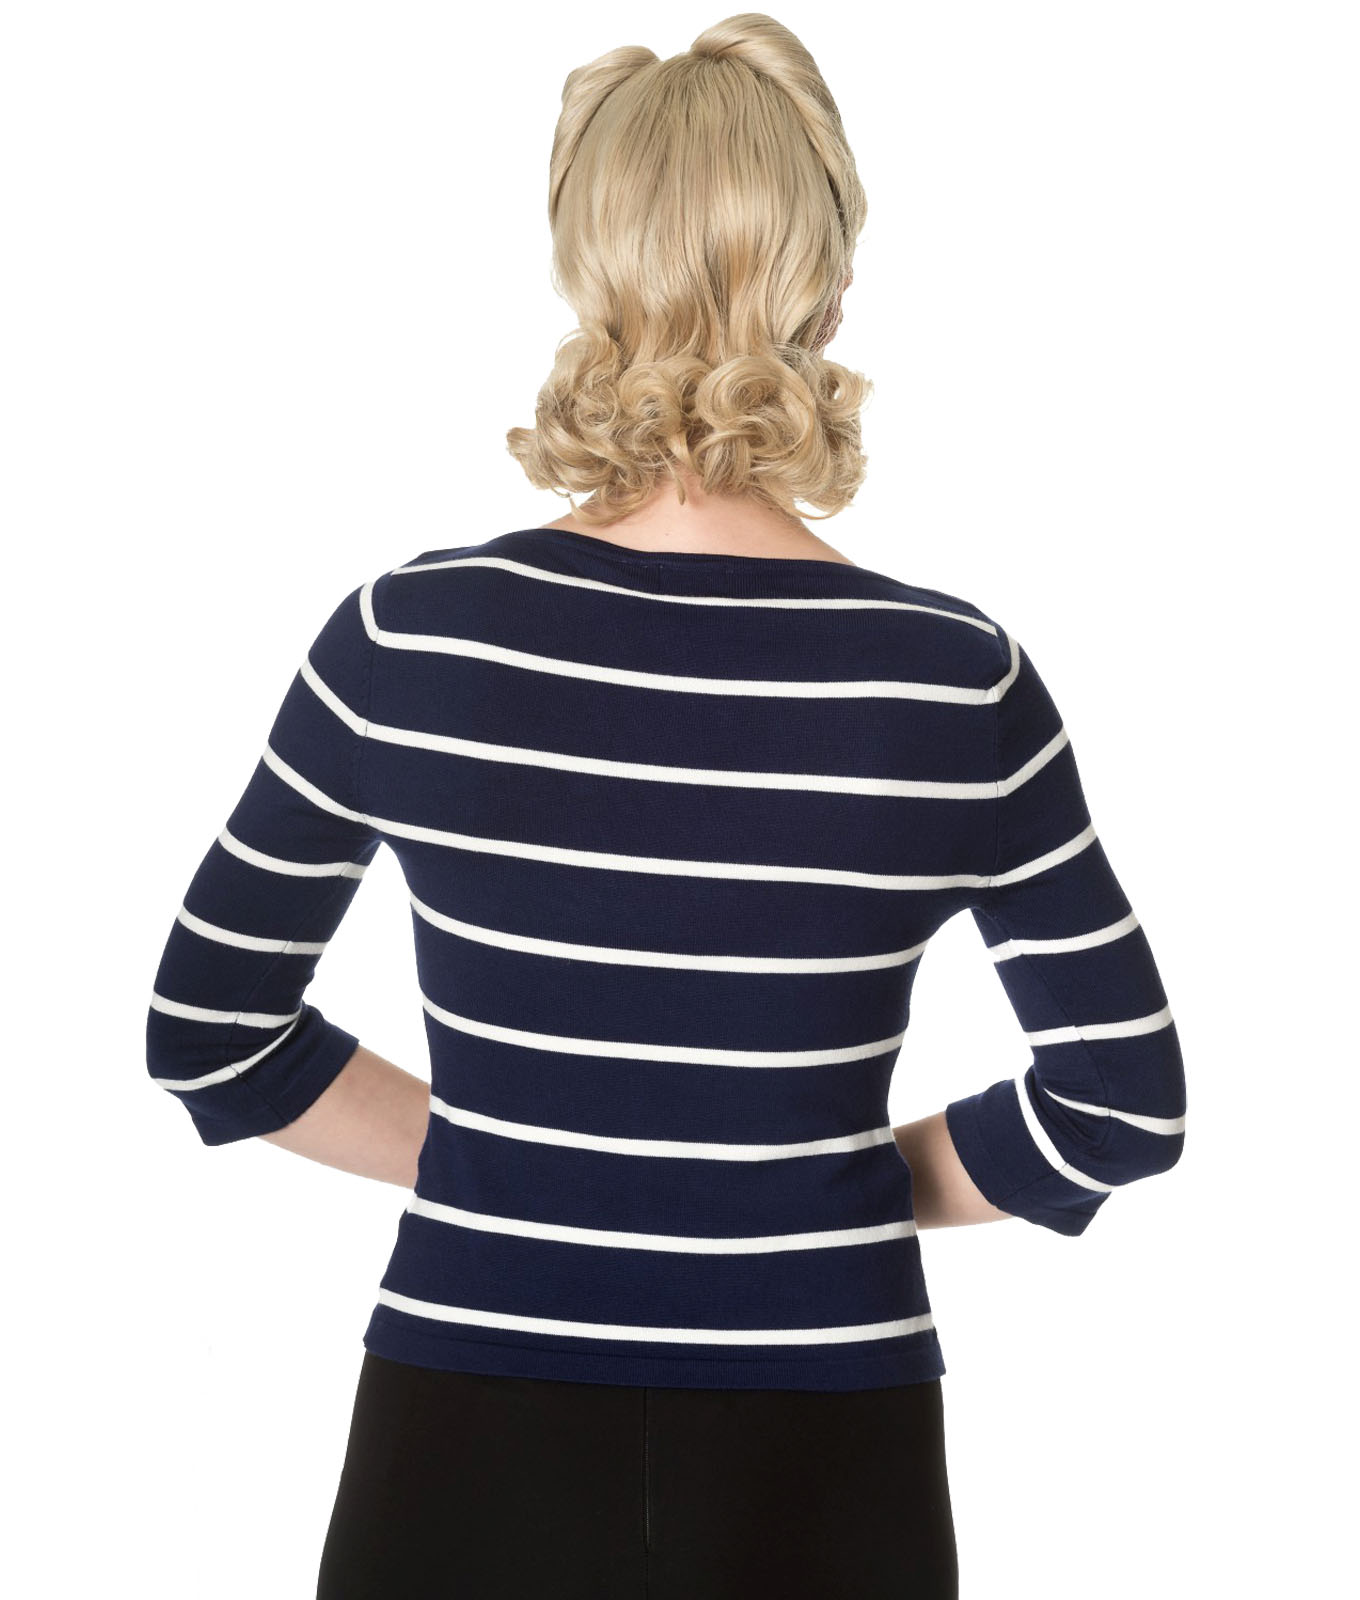 Banned Stripes Please Vintage Style Knit Jumper Striped Top